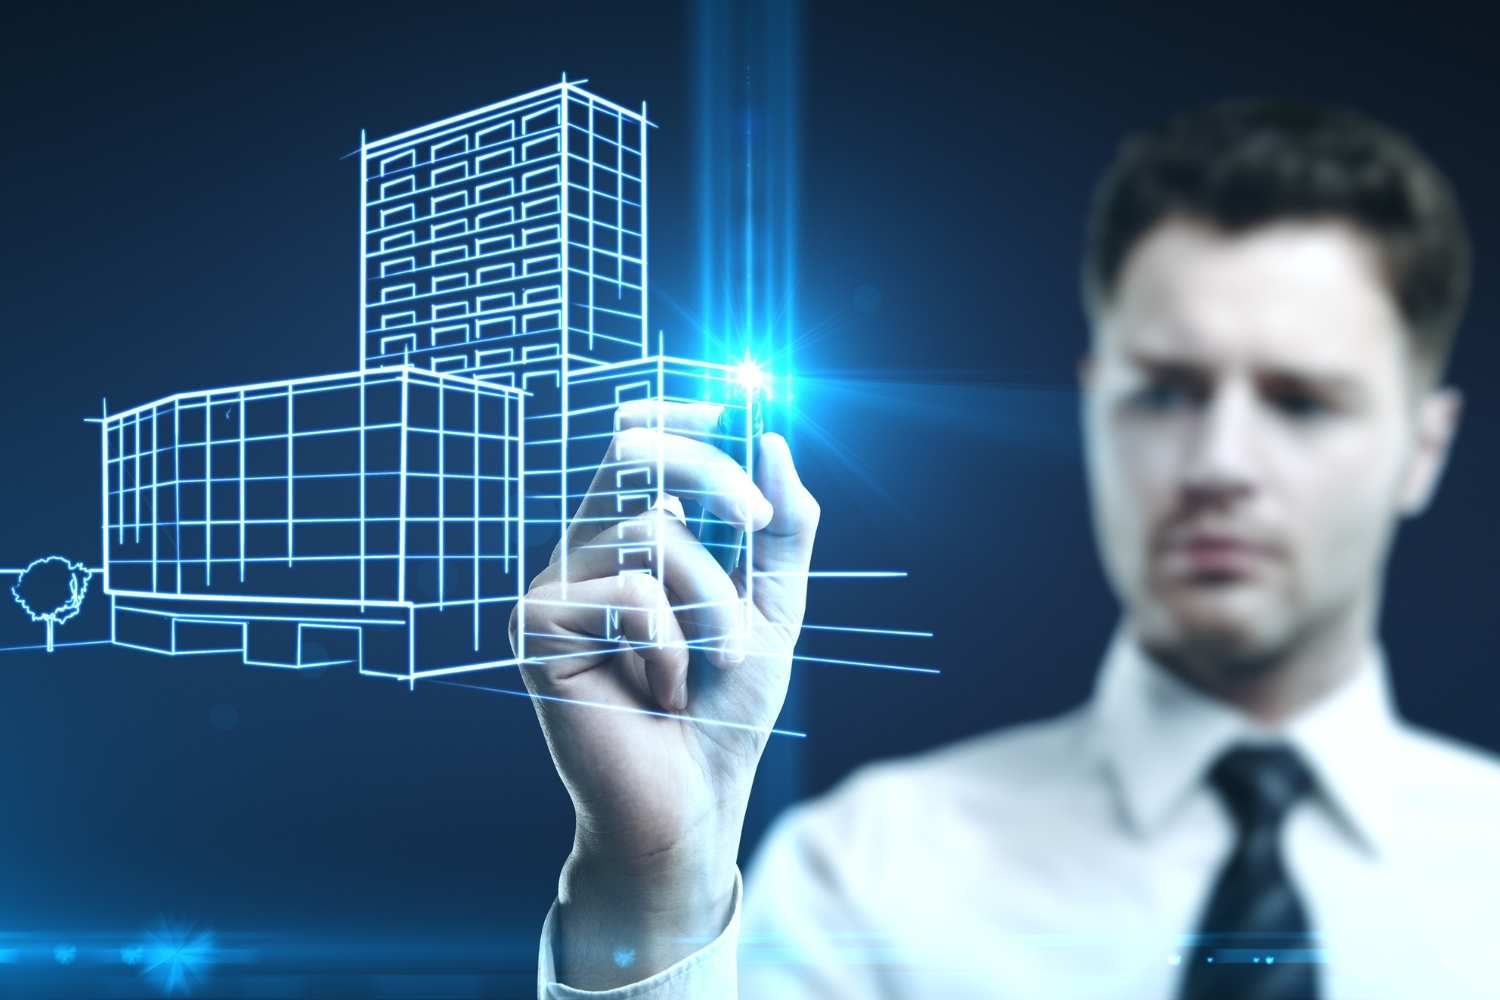 Enabling the digitisation of architecture, engineering and construction (AEC)